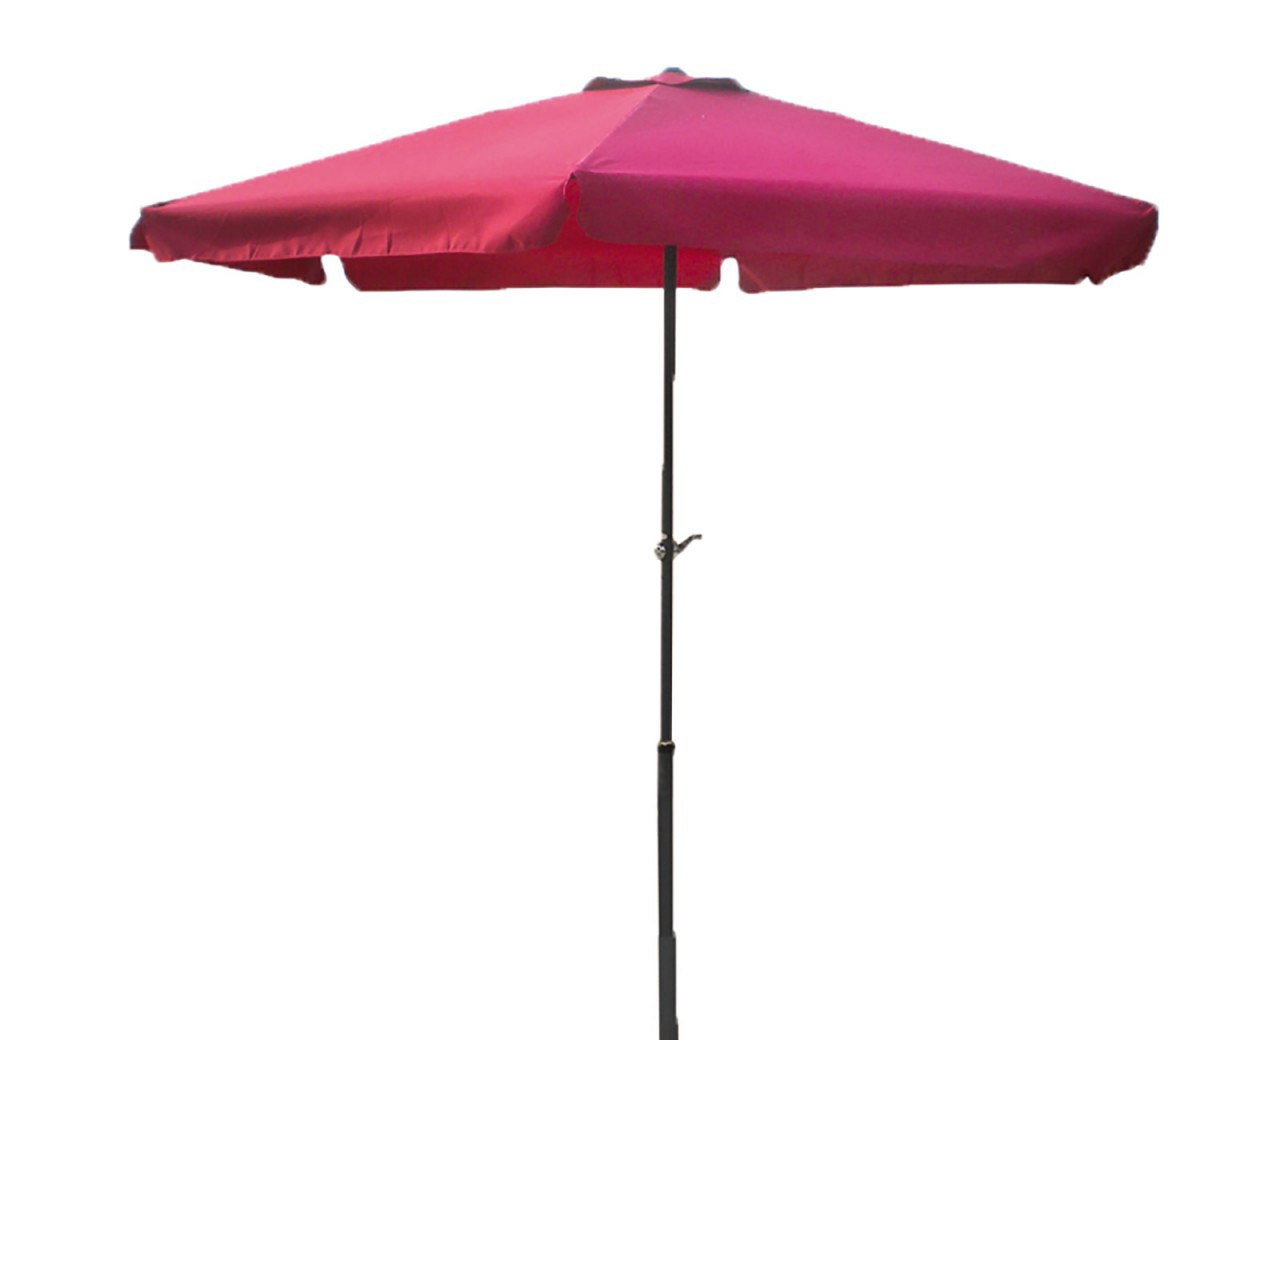 LEX Umbrella Ø 3m with crank in Burgundy